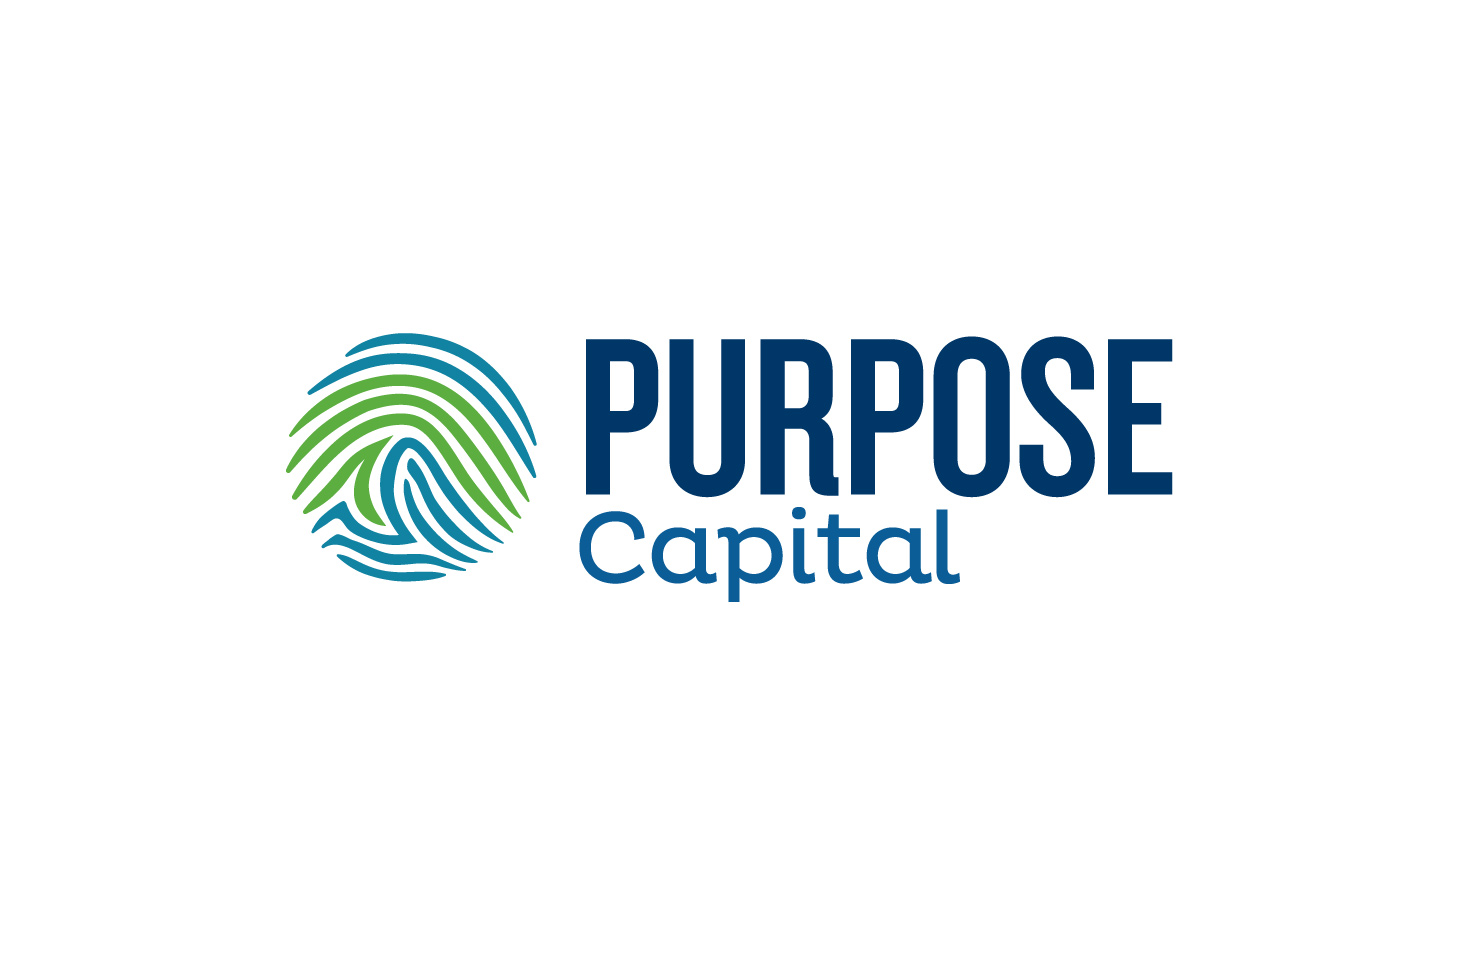 Purpose Capital